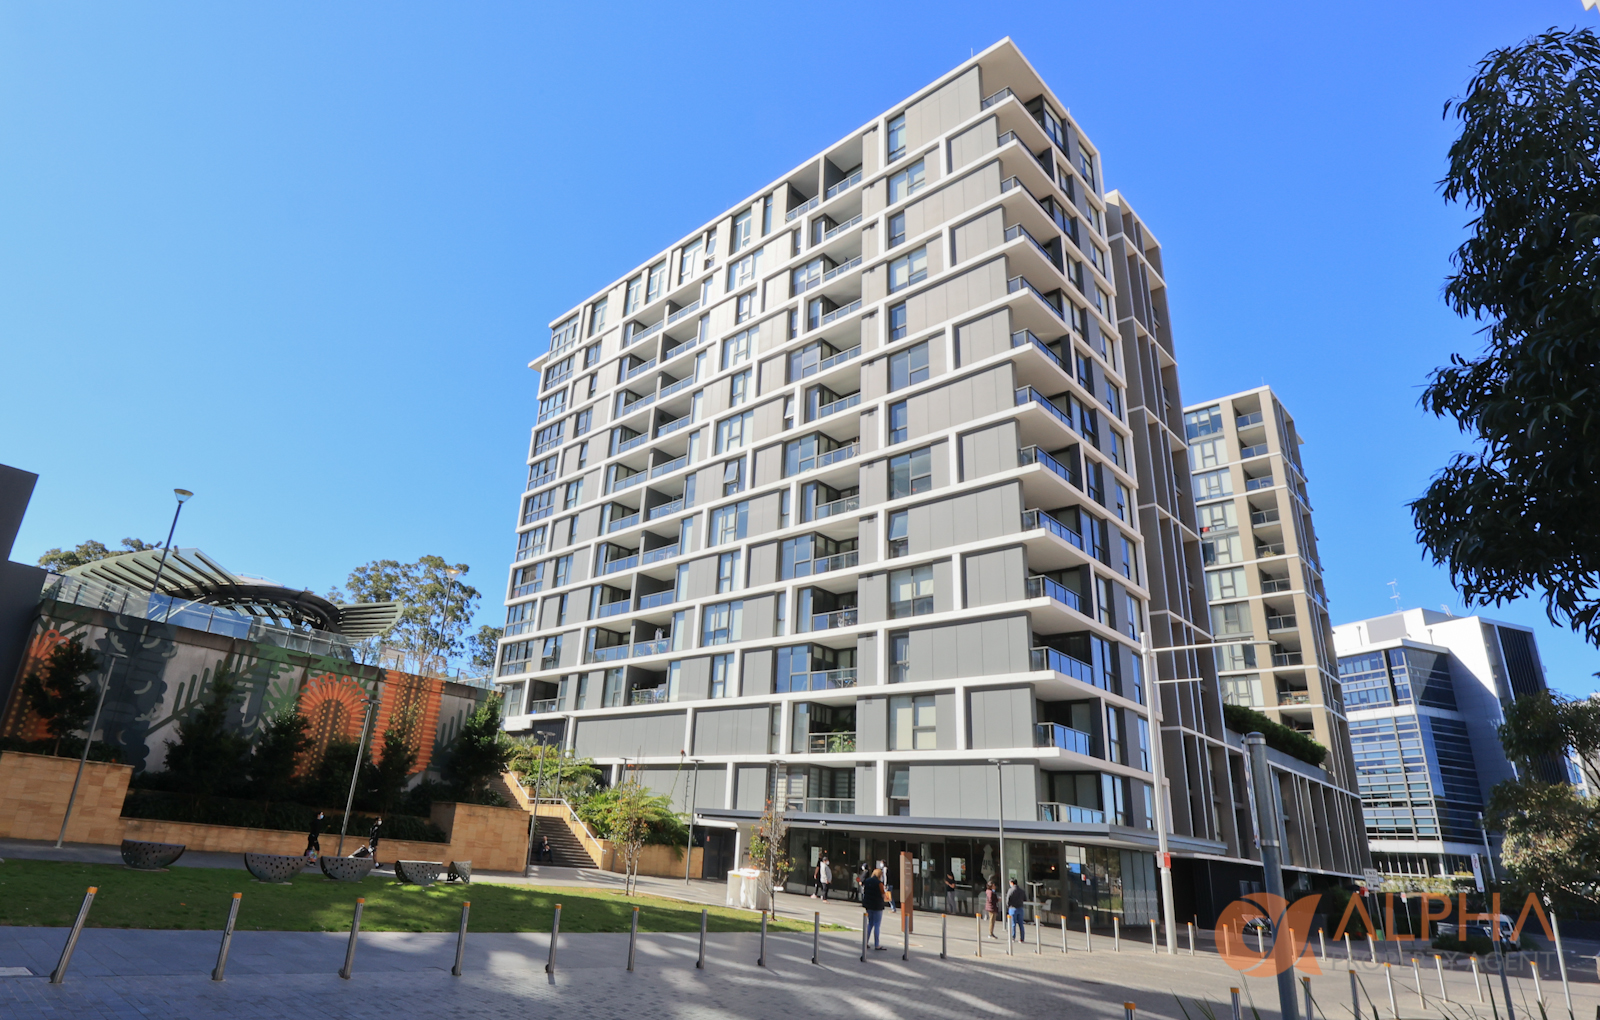 Ryde Garden – 1 bedroom apartment for lease